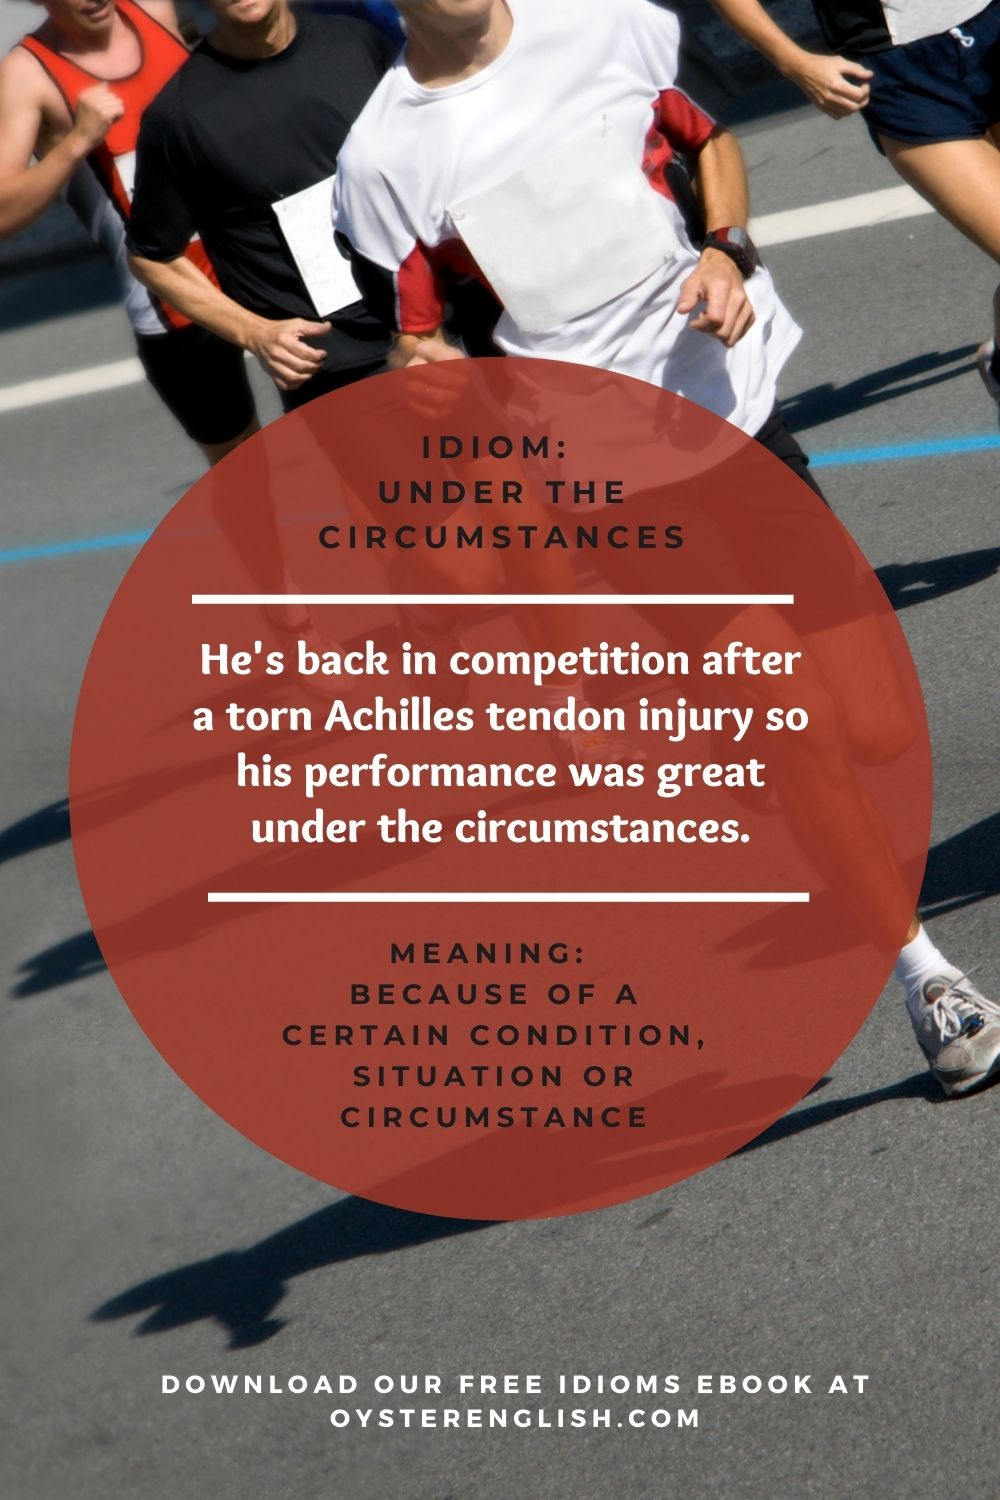 Image of runners in a road race and definition of